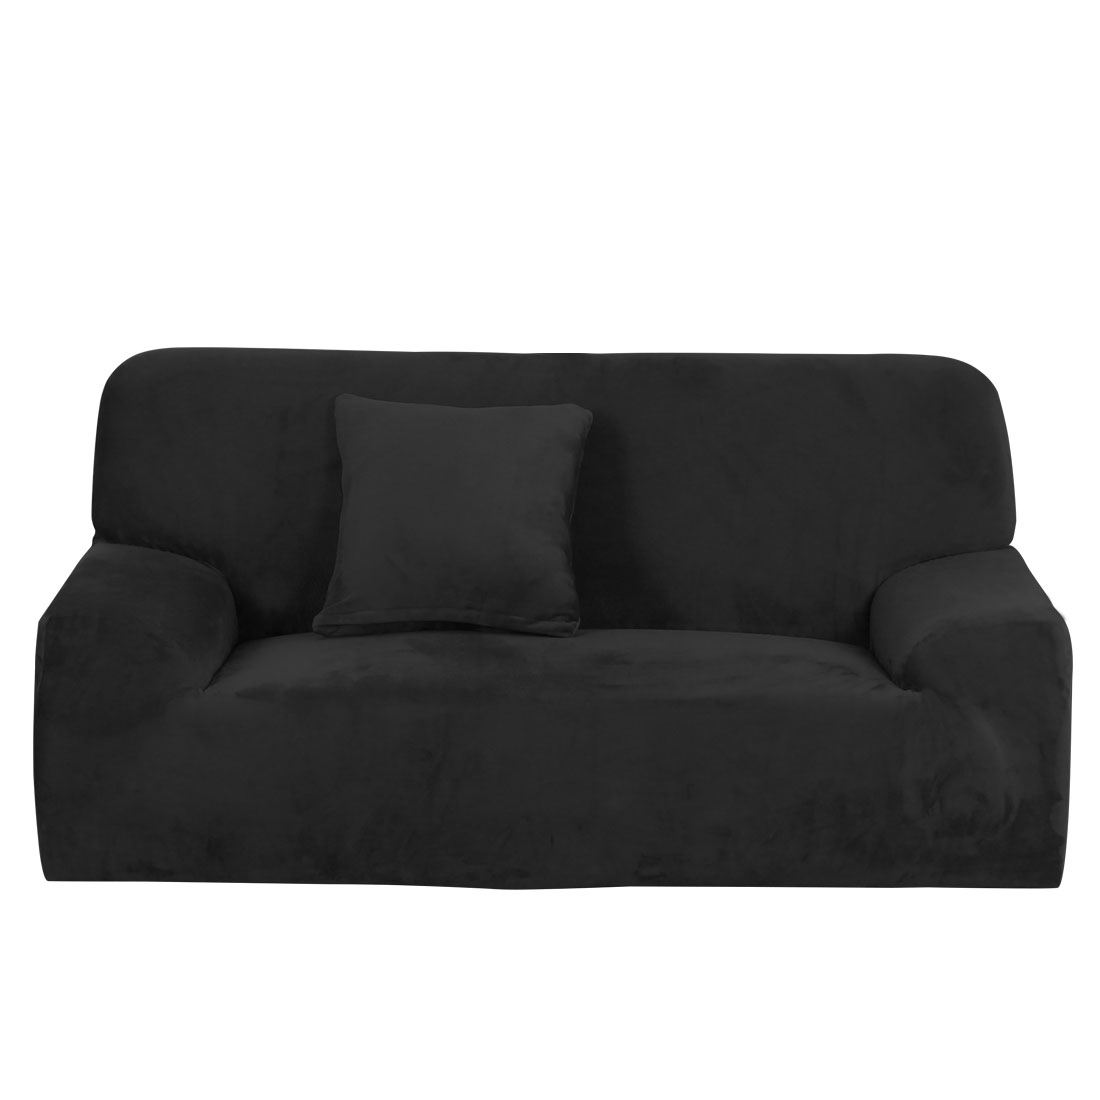 Couch L Form Piccocasa L Shaped Stretch Sofa Covers Couch Slipcovers For 3 Seater